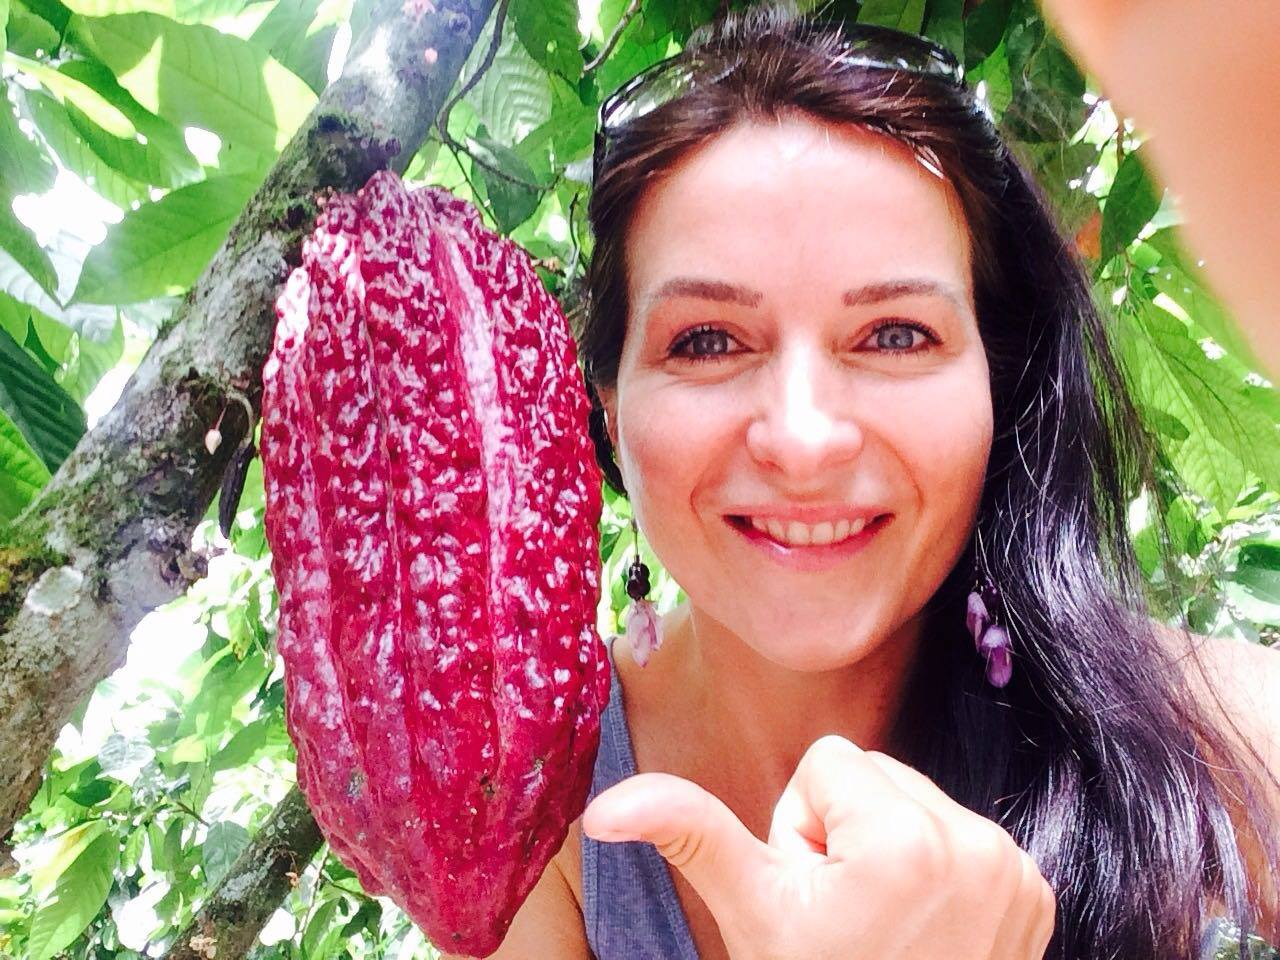 Tereza Havrlandova, Lifefood founder, and a cacao bean